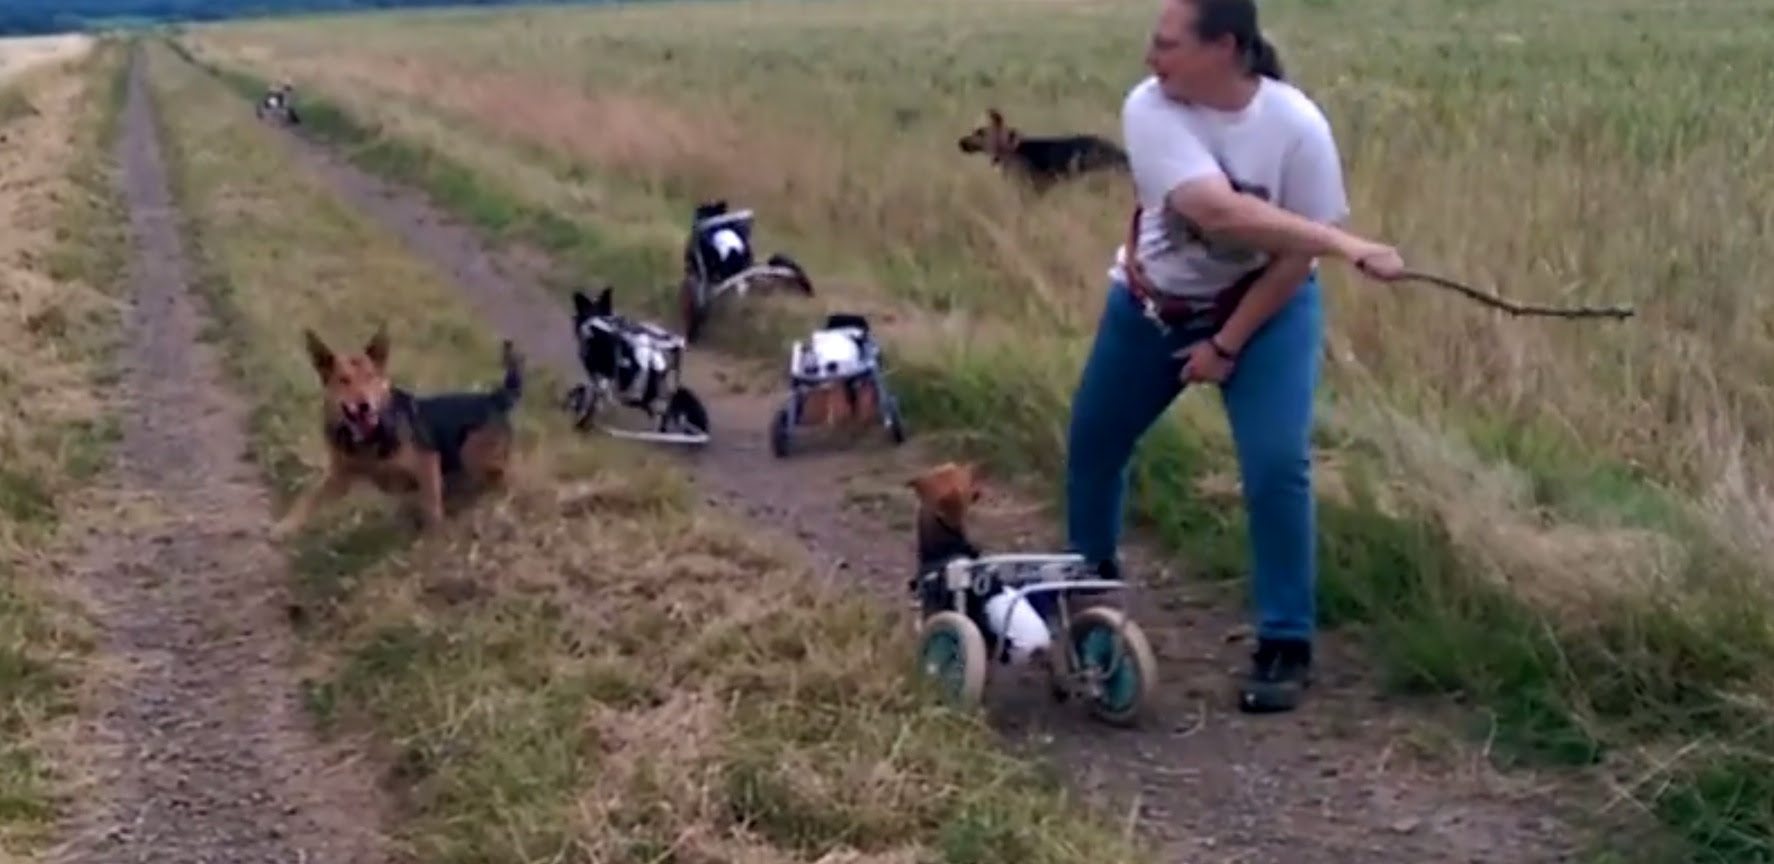 Watching 5 Paralyzed Dogs Play Fetch Using Wheelchairs Will Make You